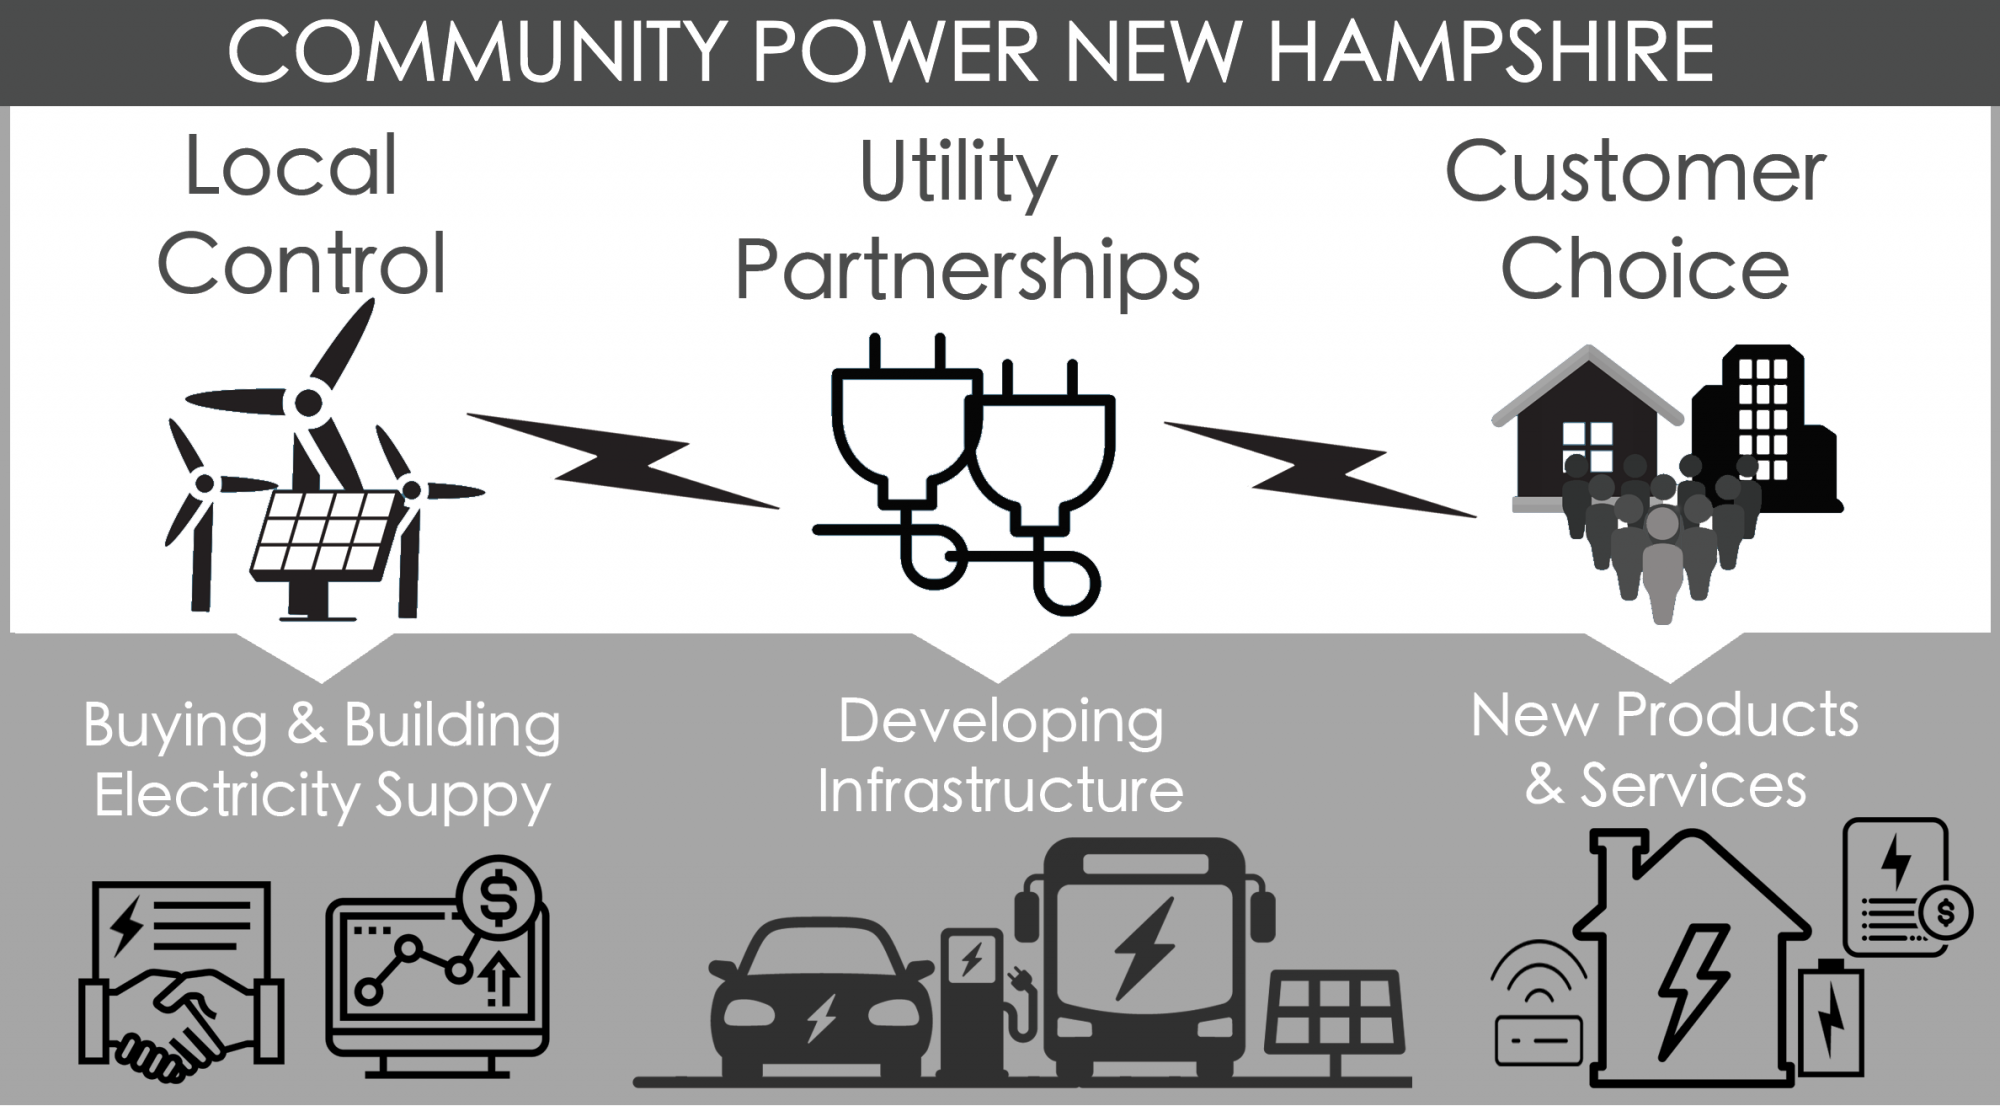 Community Power graphic